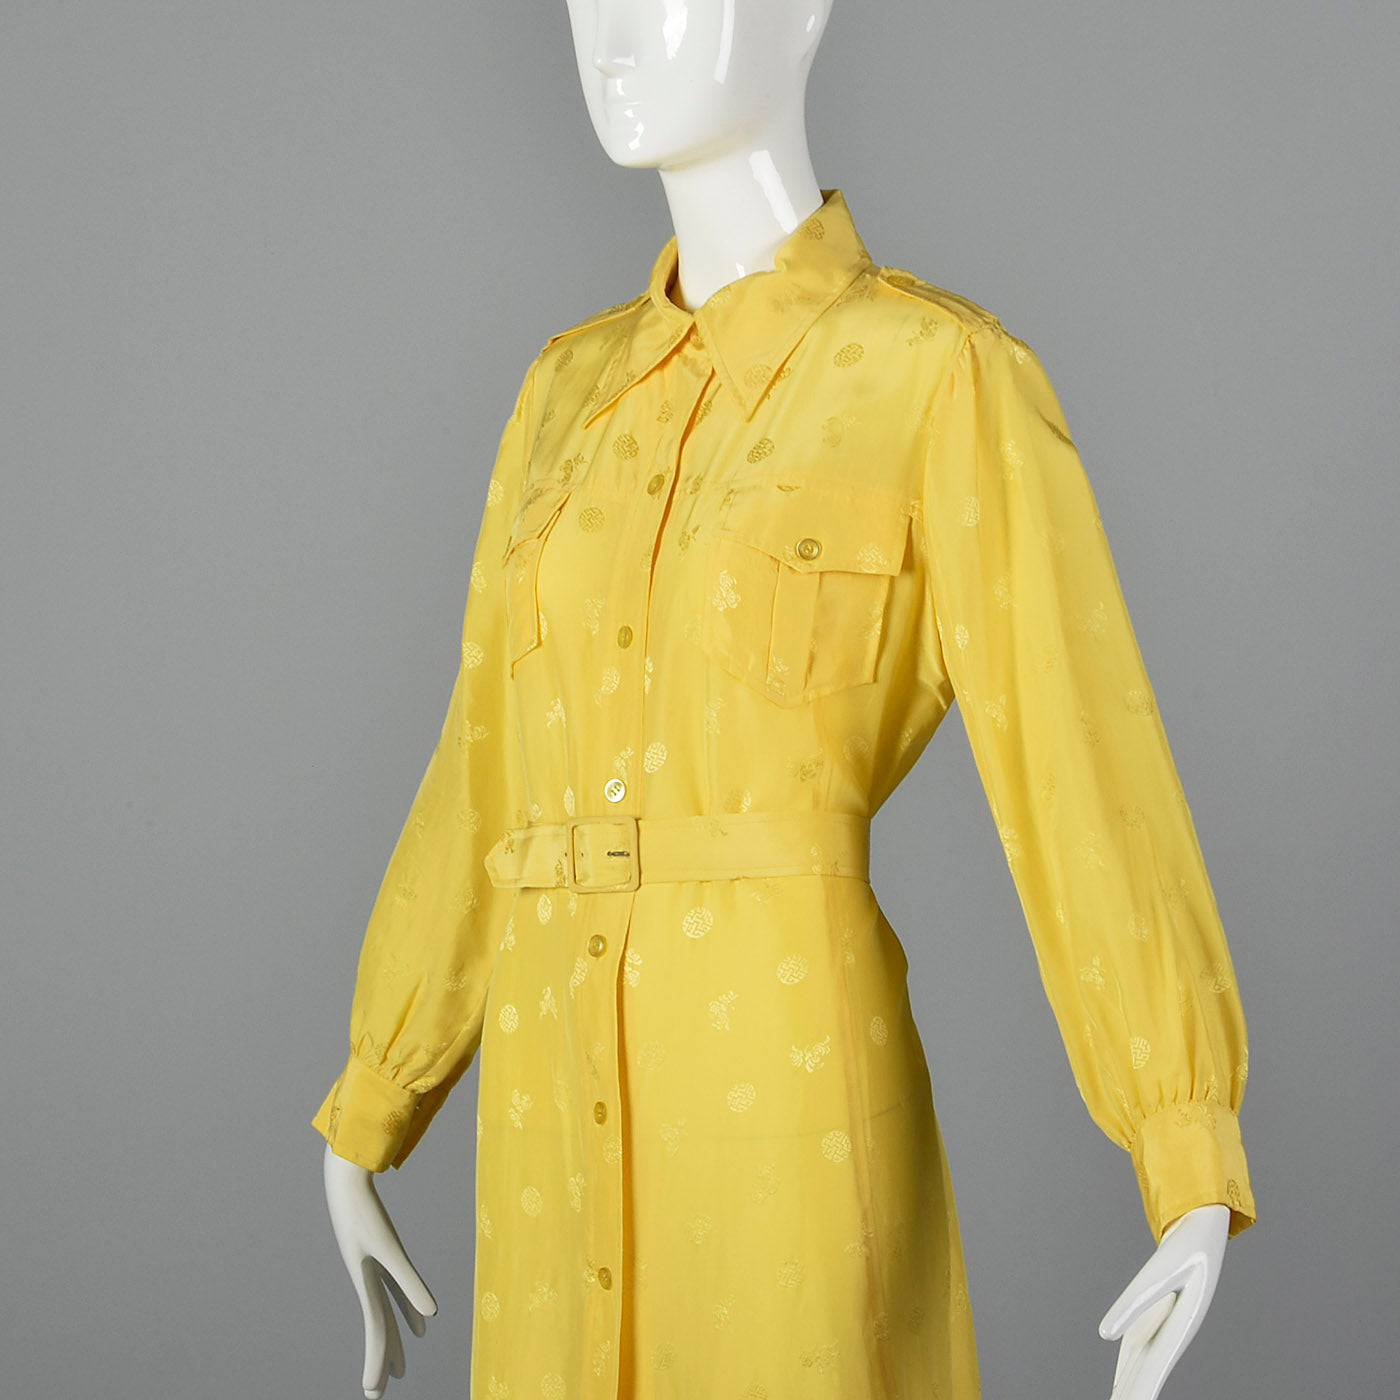 1970s Yellow Day Dress with Belted Waist